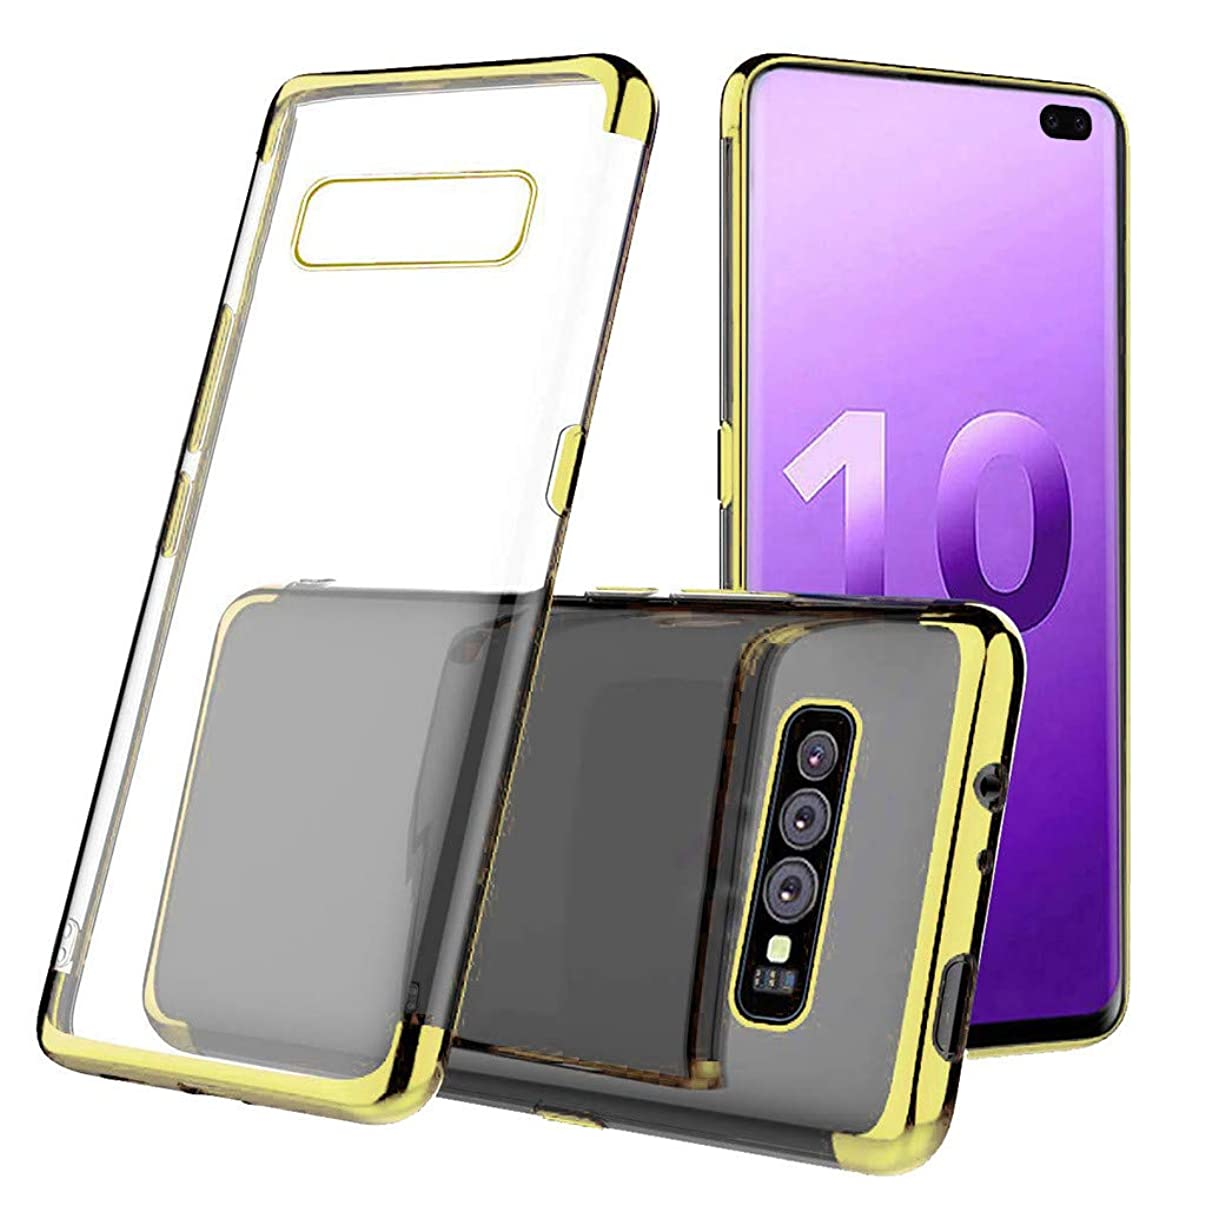 Ecurson Soft Silicone TPU Case Cover for Samsung S10 Plus 6.3inch, Slim Soft Protective Cases, Shock-Proof Protective TPU Gel Cover, Anti-Scratch